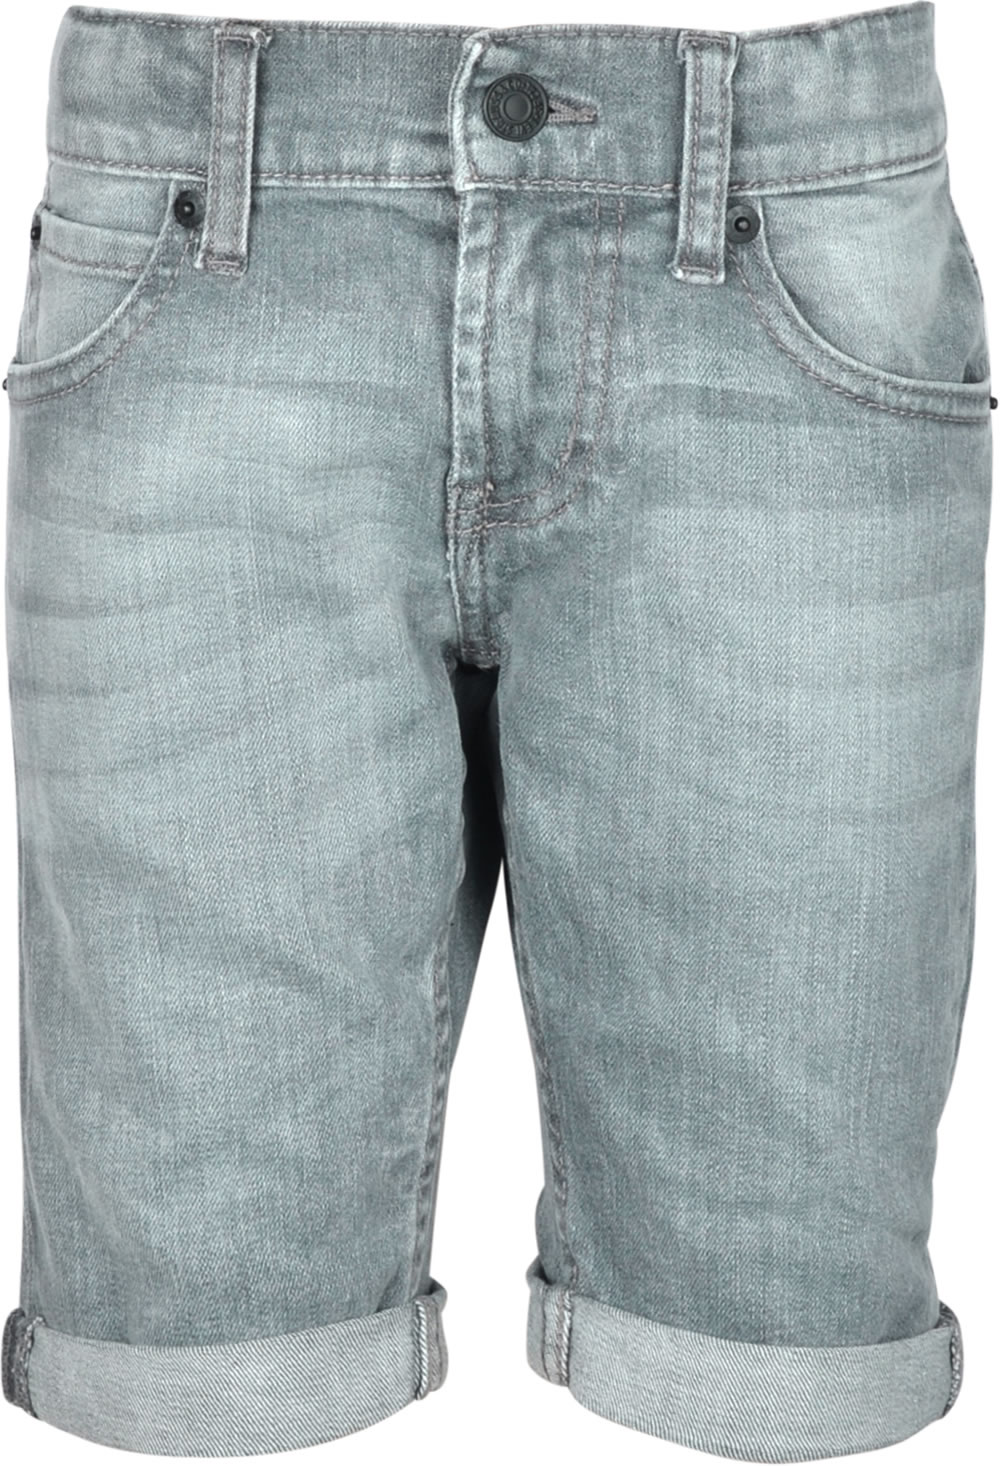 16516eb5a9 Great jeans Bermuds 511 in slim fit by LEVI'S for boys. The great wash and  the 5-pocket style make these jeans a basic for any outfit. The pants are  slim ...